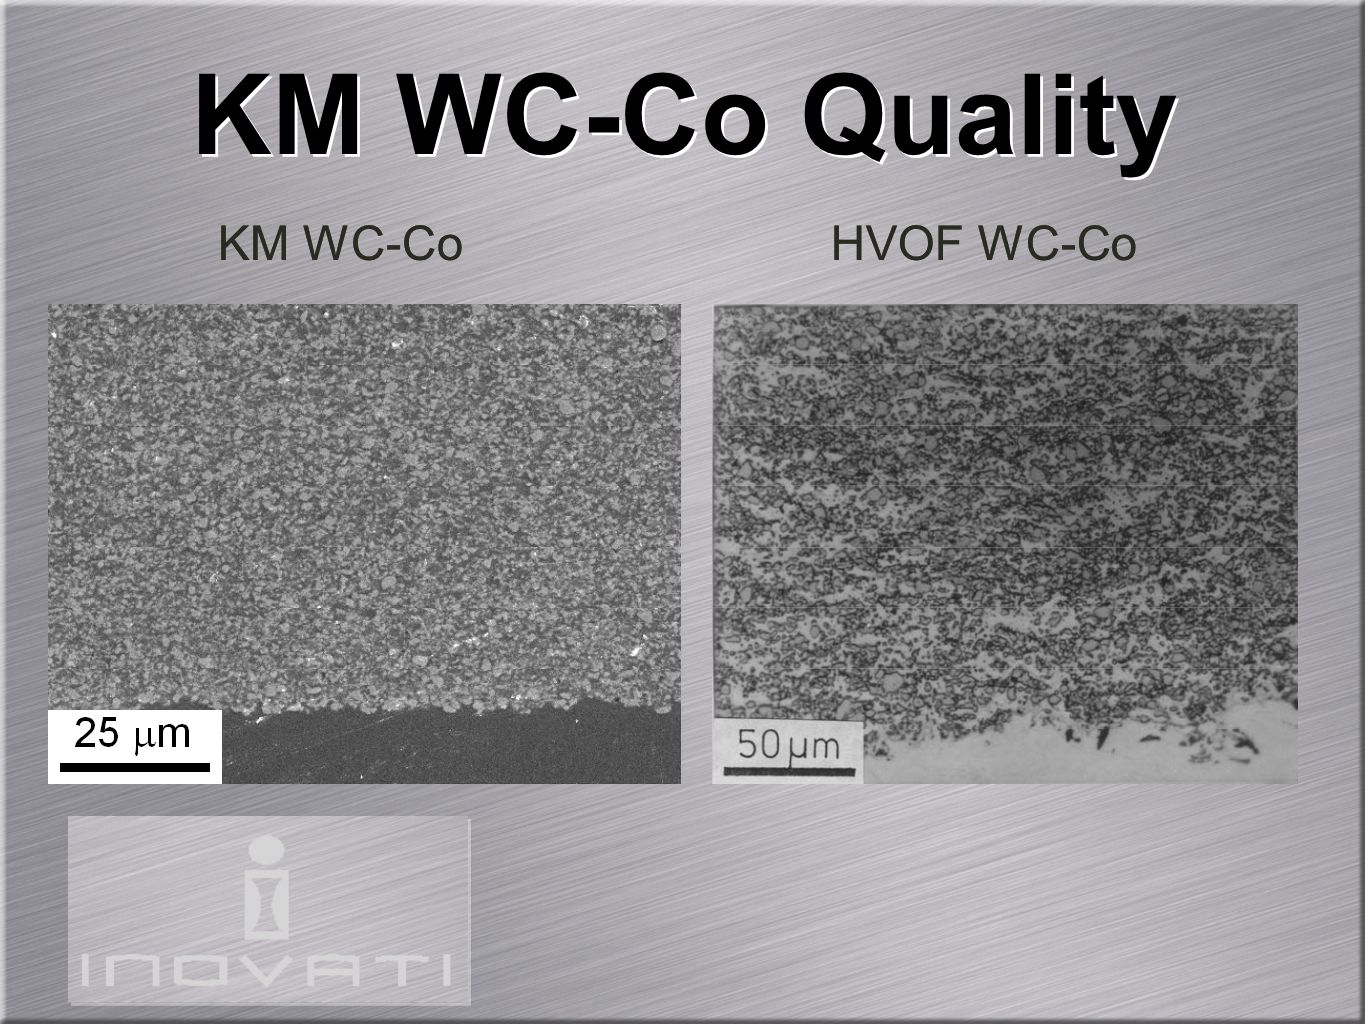 KM WC-Co Quality KM WC-Co HVOF WC-Co